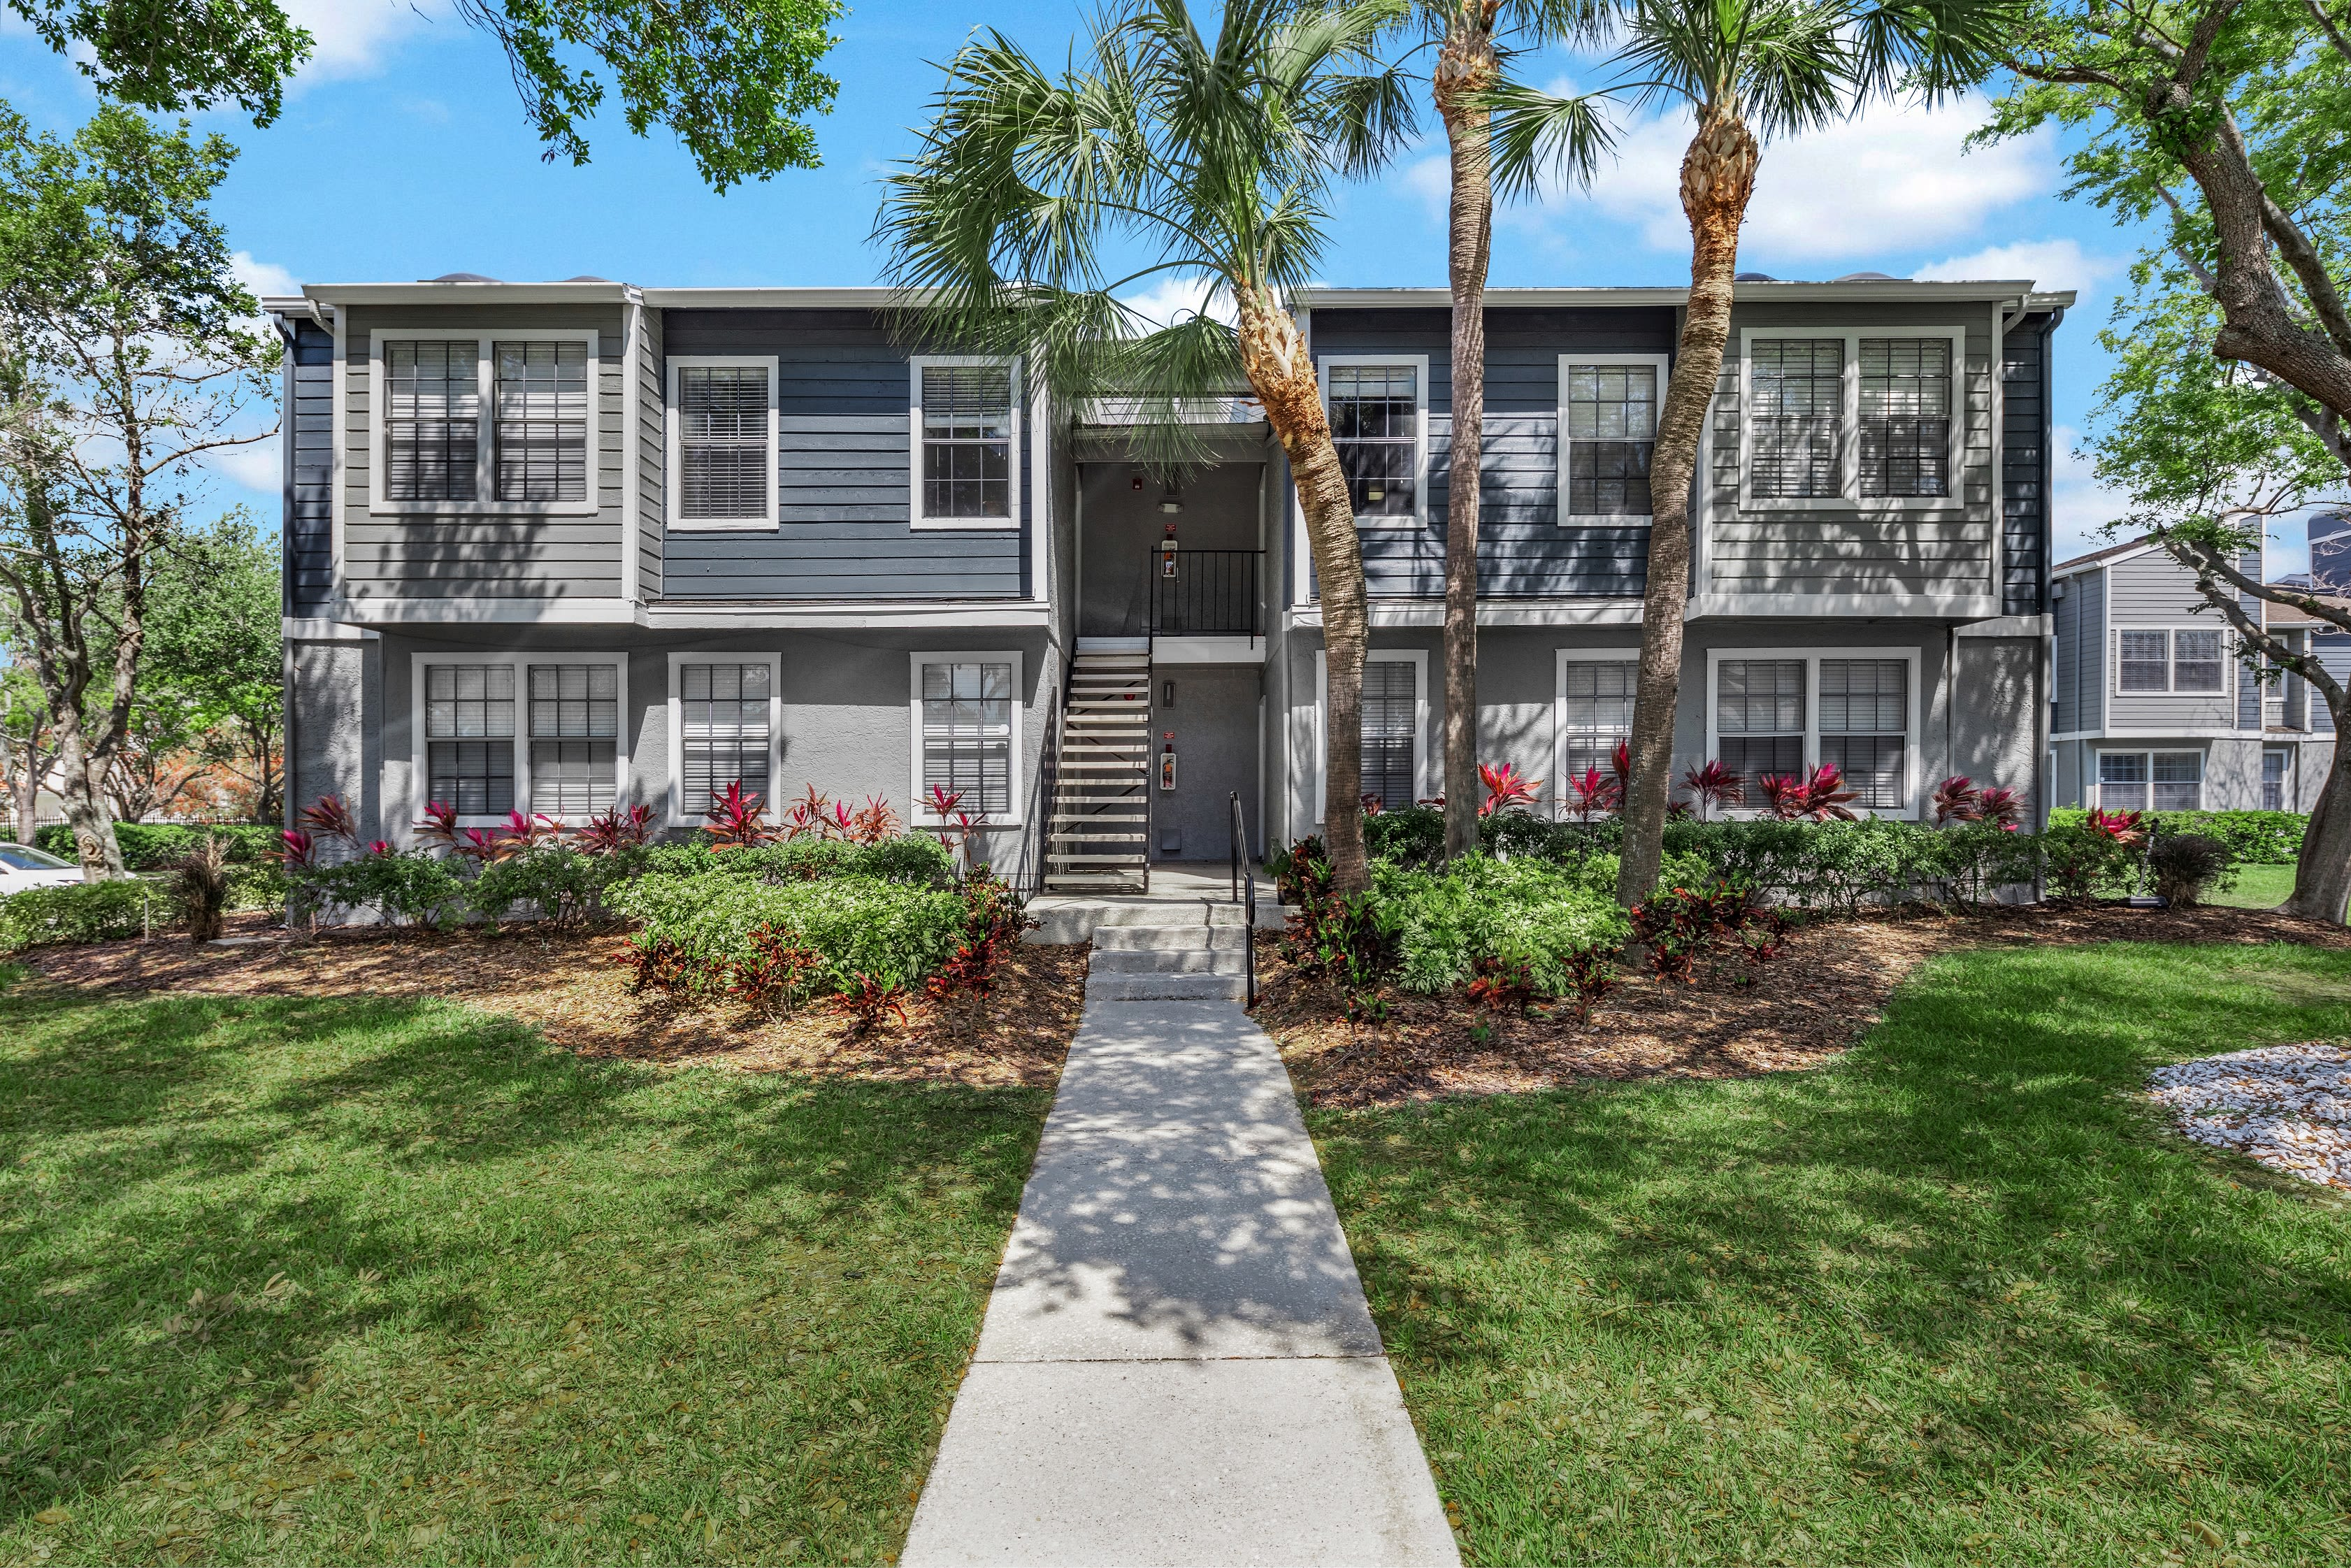 A large apartment building at Fairways at Feather Sound in Clearwater, FL